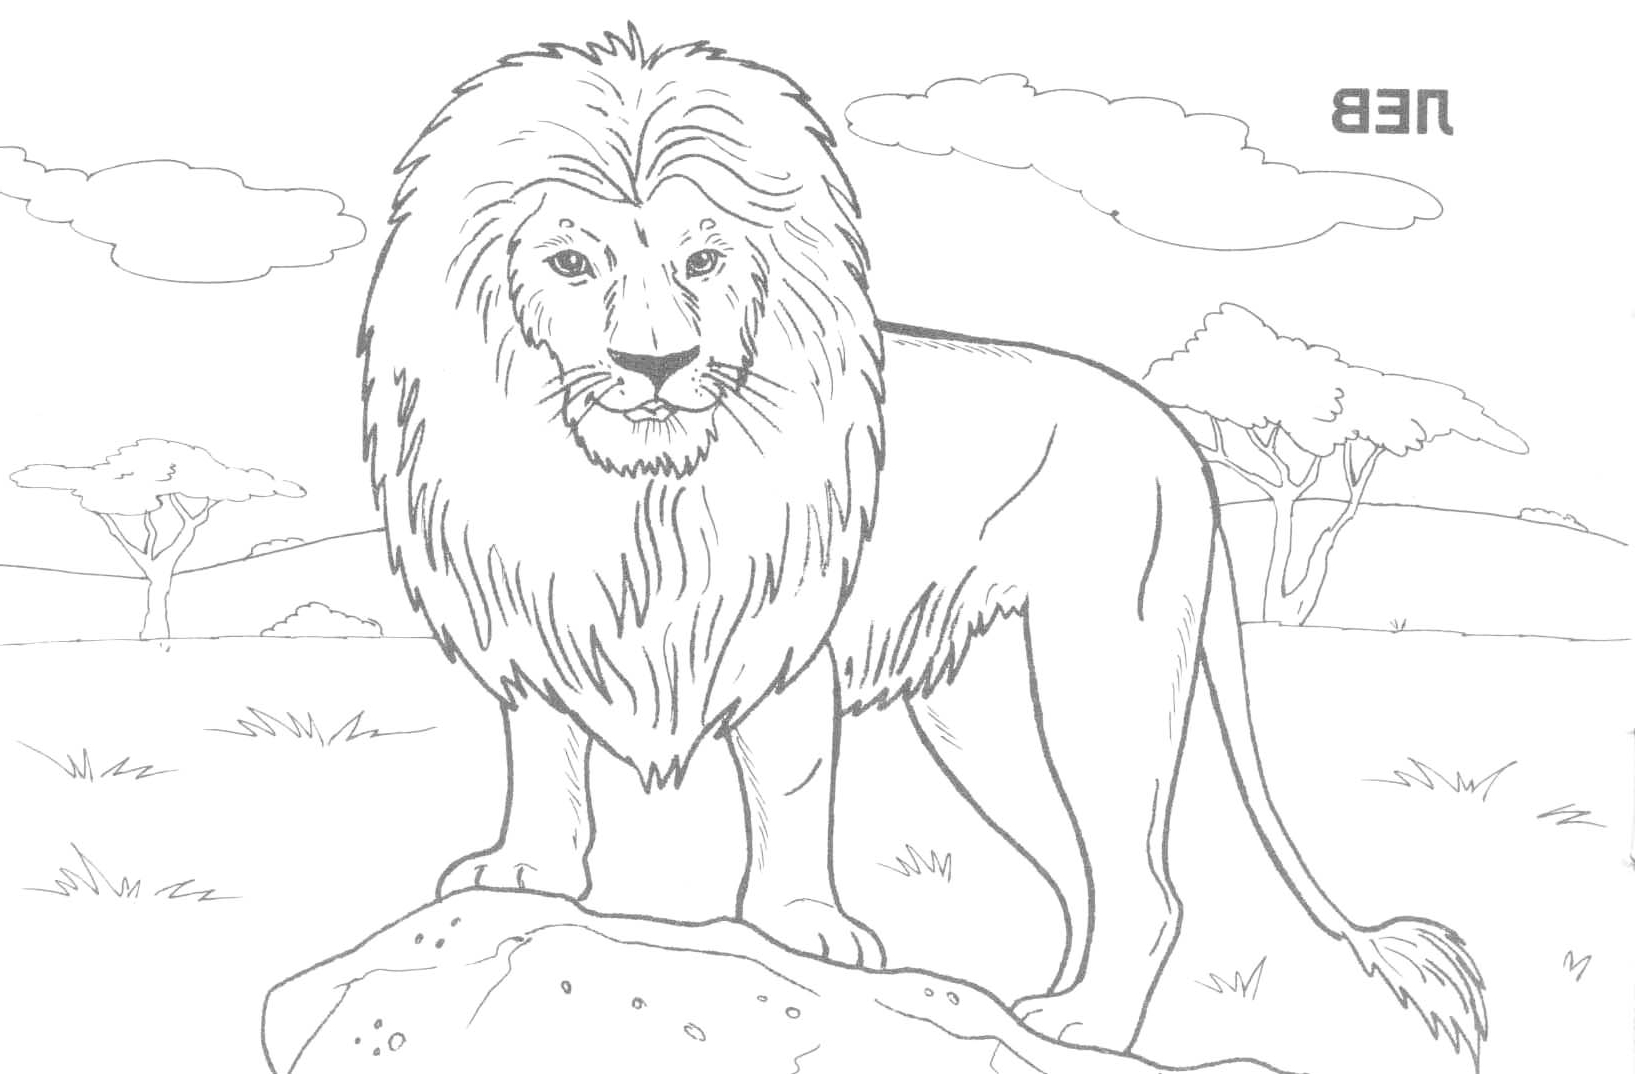 1635x1074 Sketch Of Wild Animals Grizzly Bear, Hand Drawn Sketch Of Bear